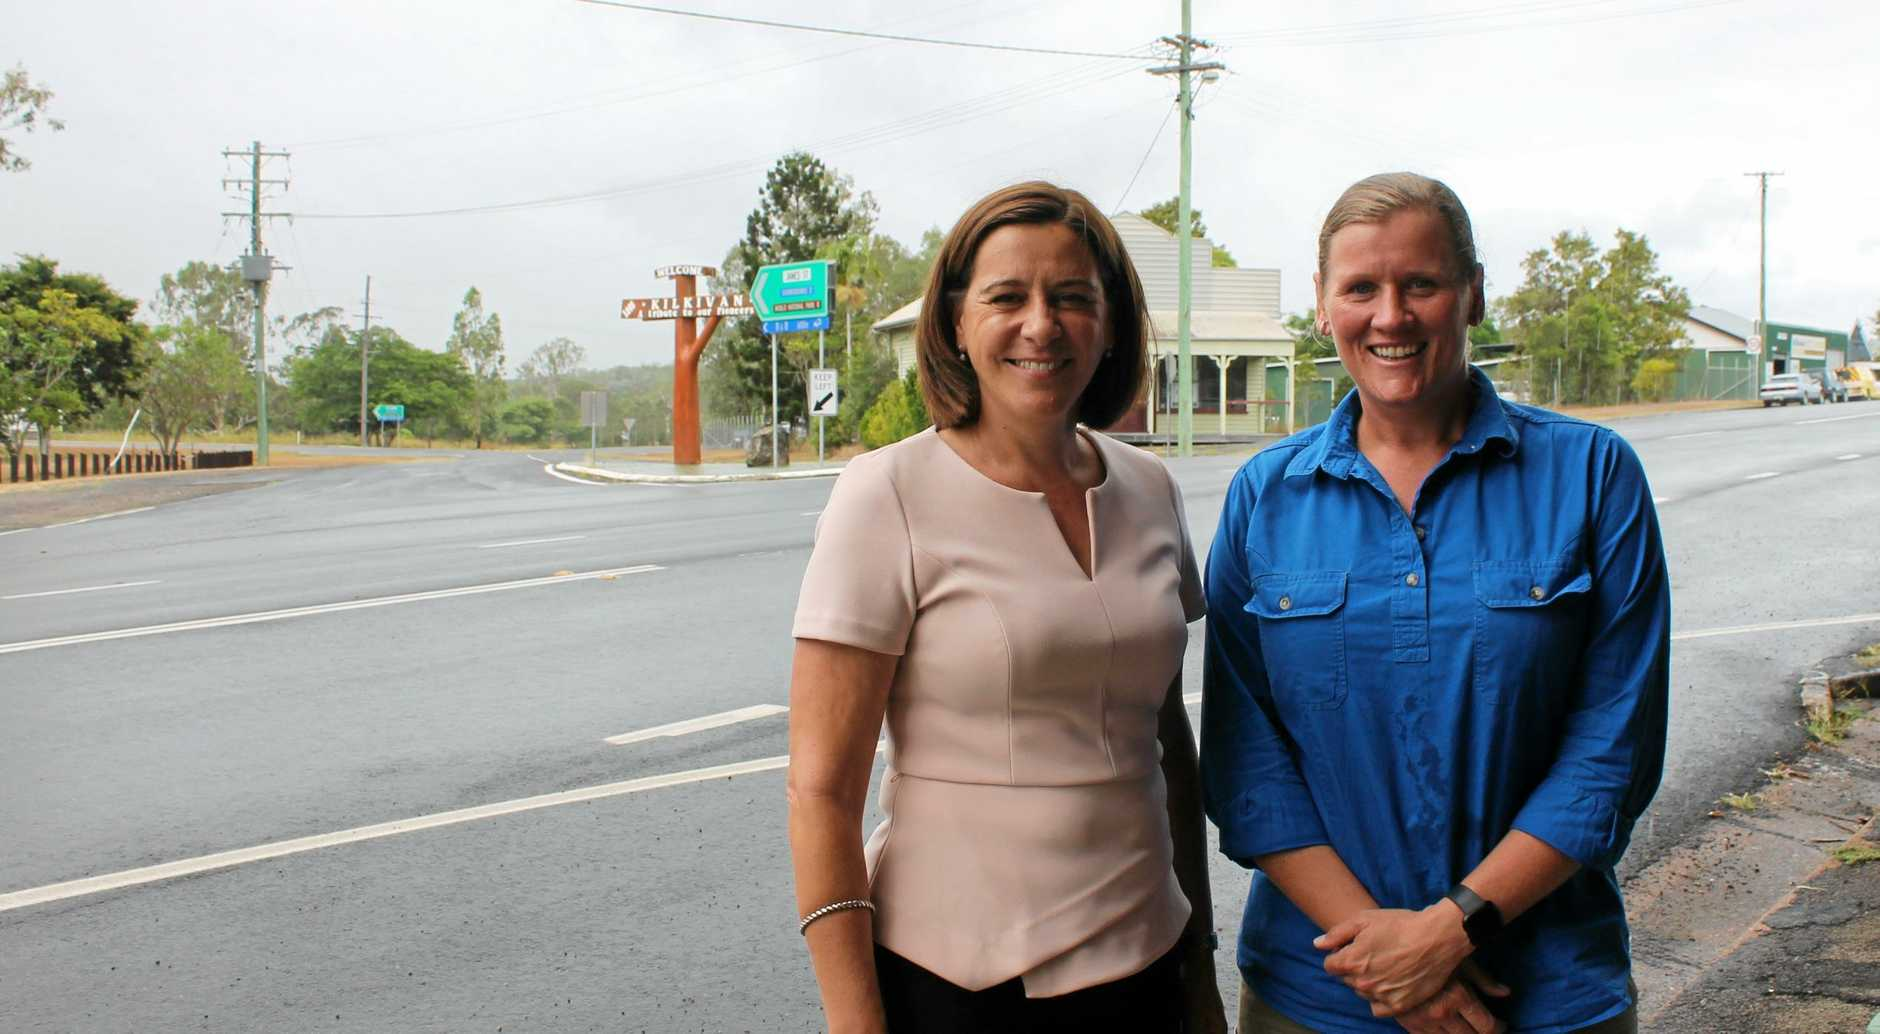 TRAFFIC WIN: Nanango MP Deb Frecklington and Kilkivan businesswoman Katy McCallum at the James St intersection with the Wide Bay Highway. James Street will have 'Local Traffic Only' signs installed.